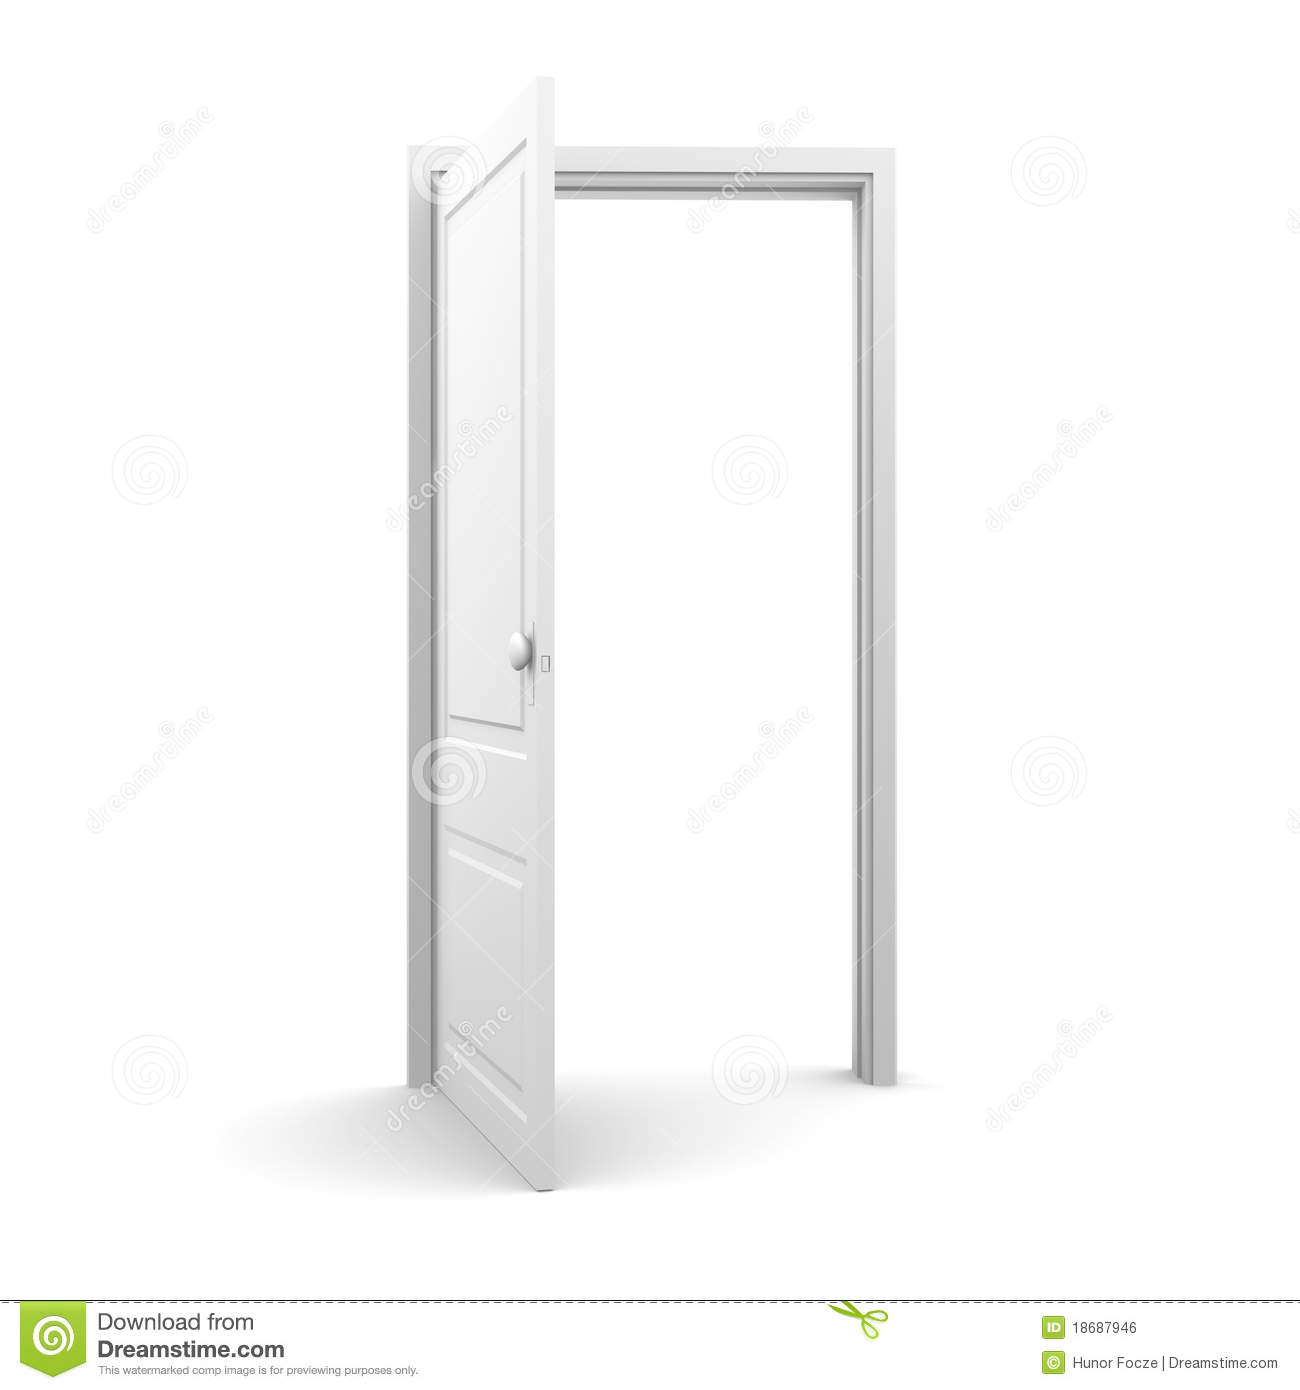 Royalty-Free Stock Photo. Download Isolated White Opened Door ...  sc 1 st  Dreamstime.com & Isolated White Opened Door Royalty Free Stock Image - Image: 18687946 pezcame.com